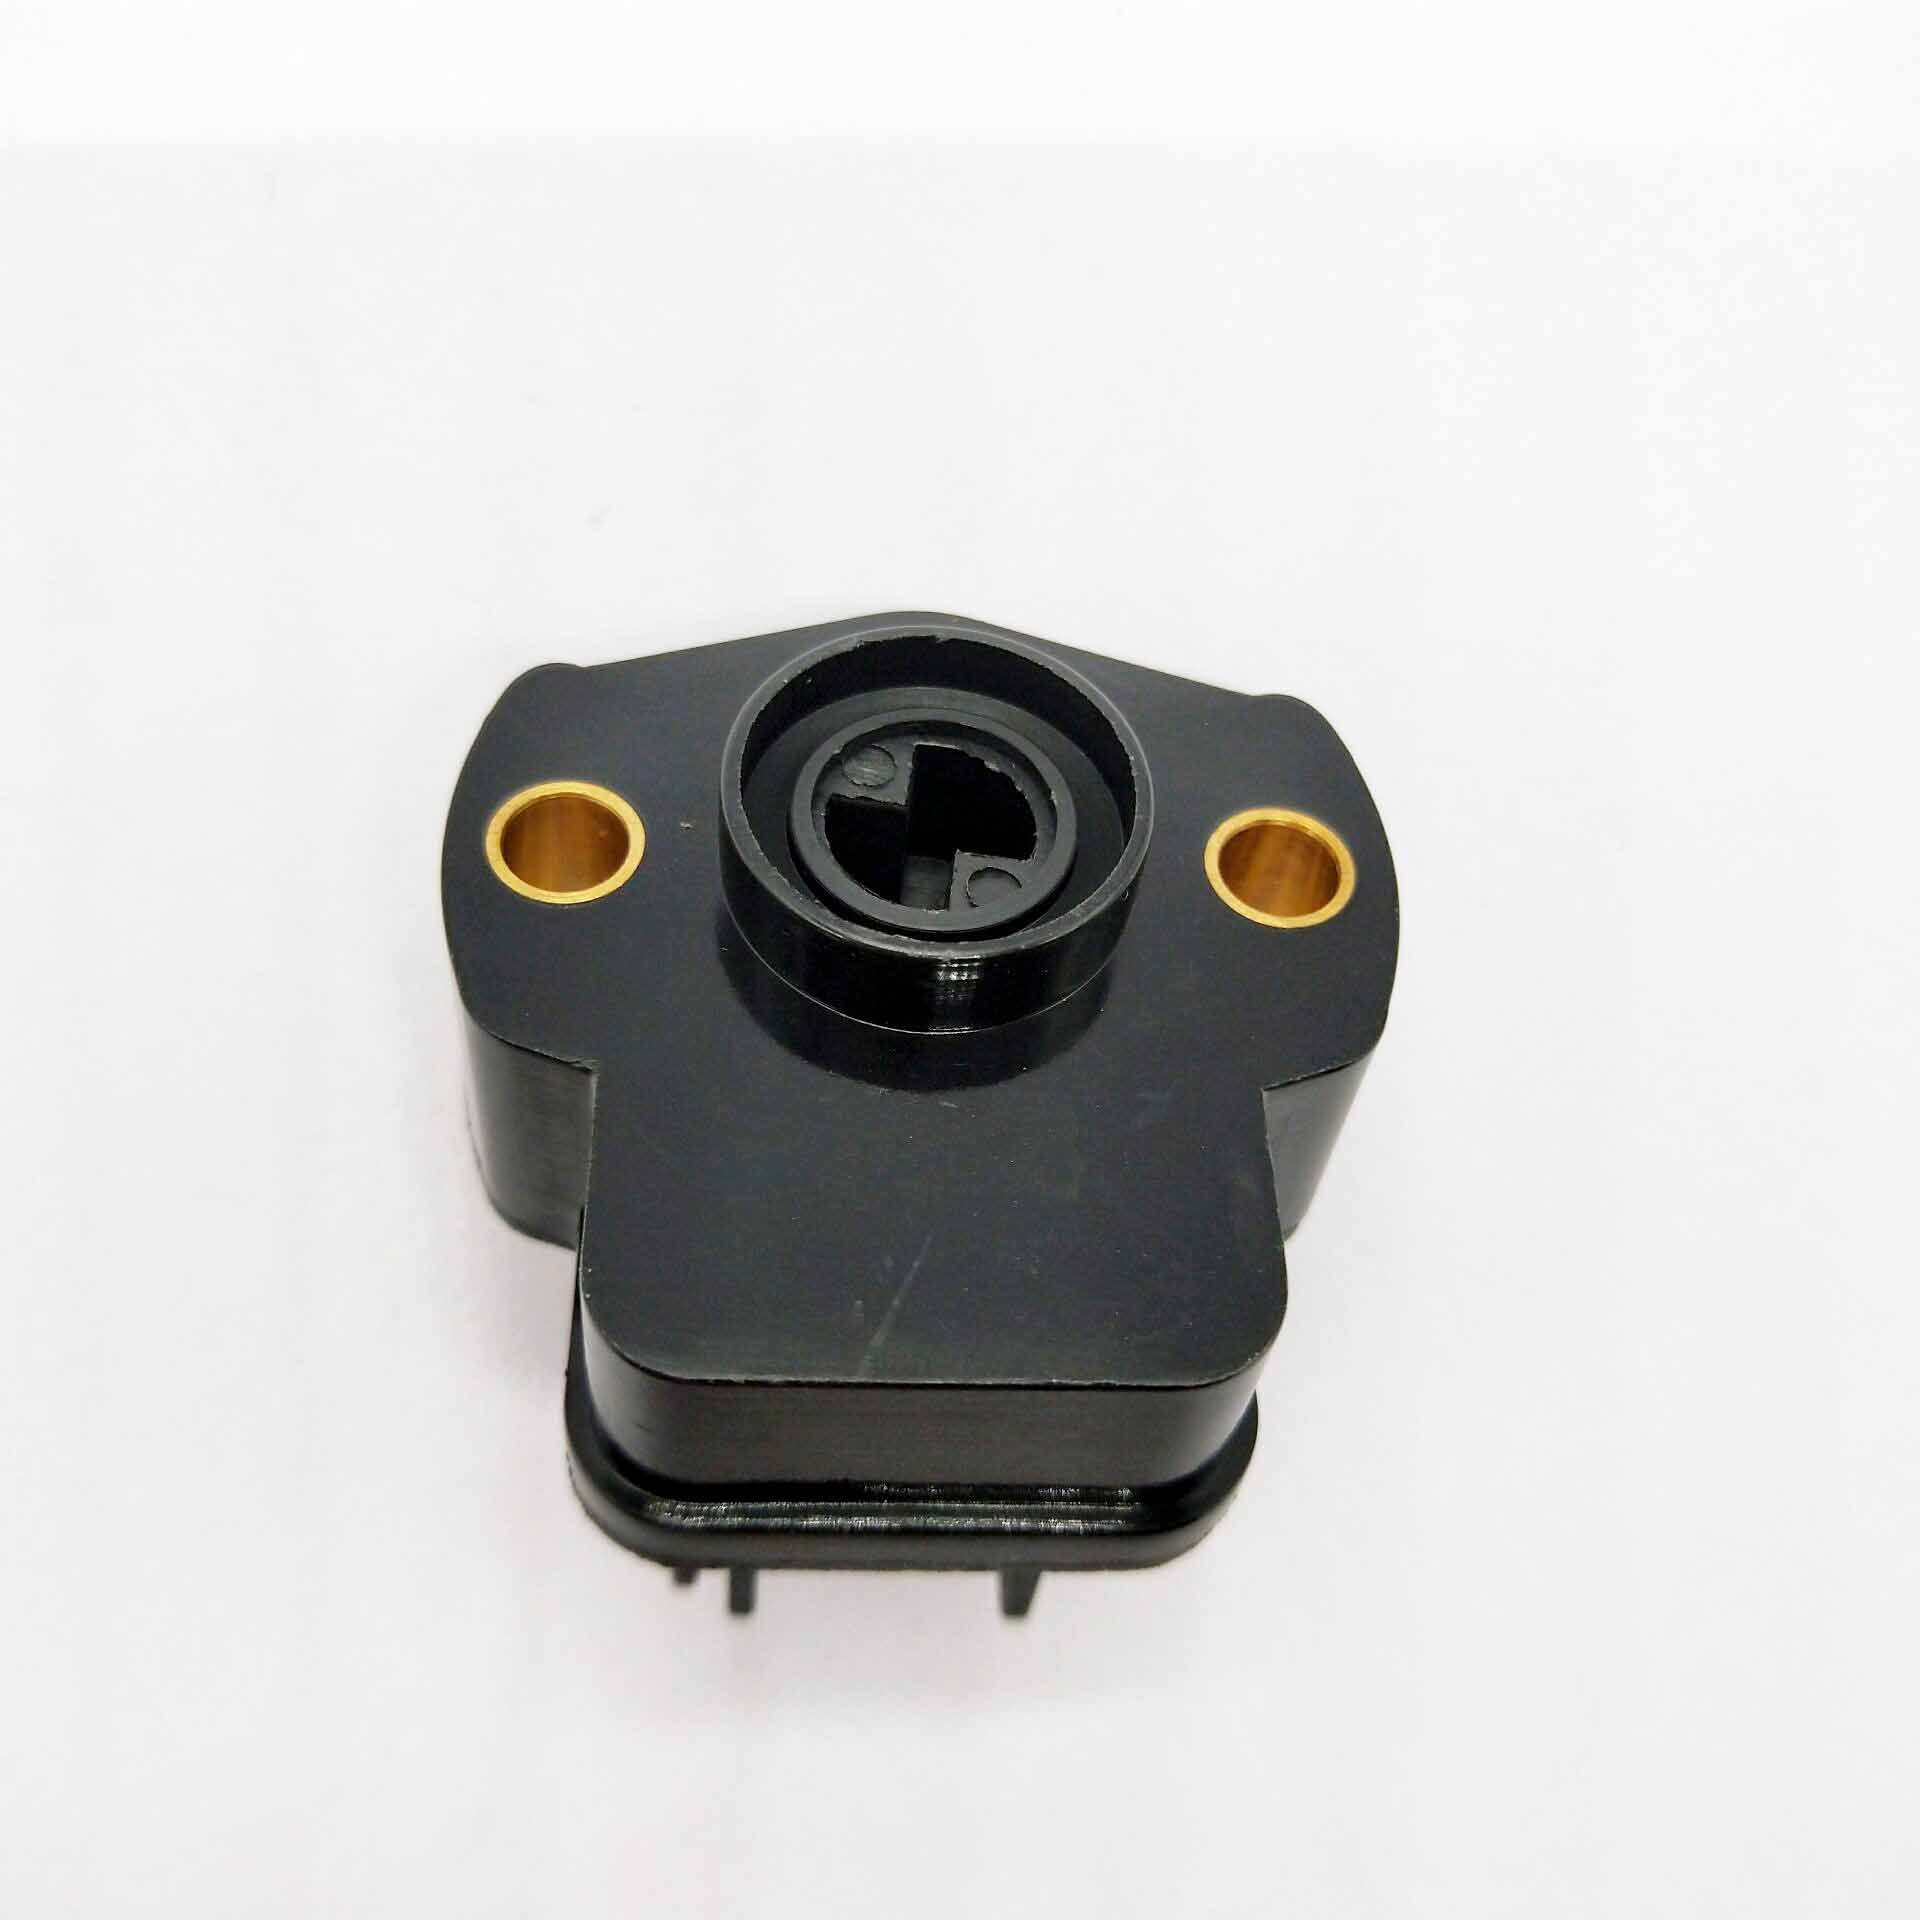 Throttle-Position-Sensor Dodge Durango Grand-Cherokee for Jeep Dakota with Warranty Good-Service title=